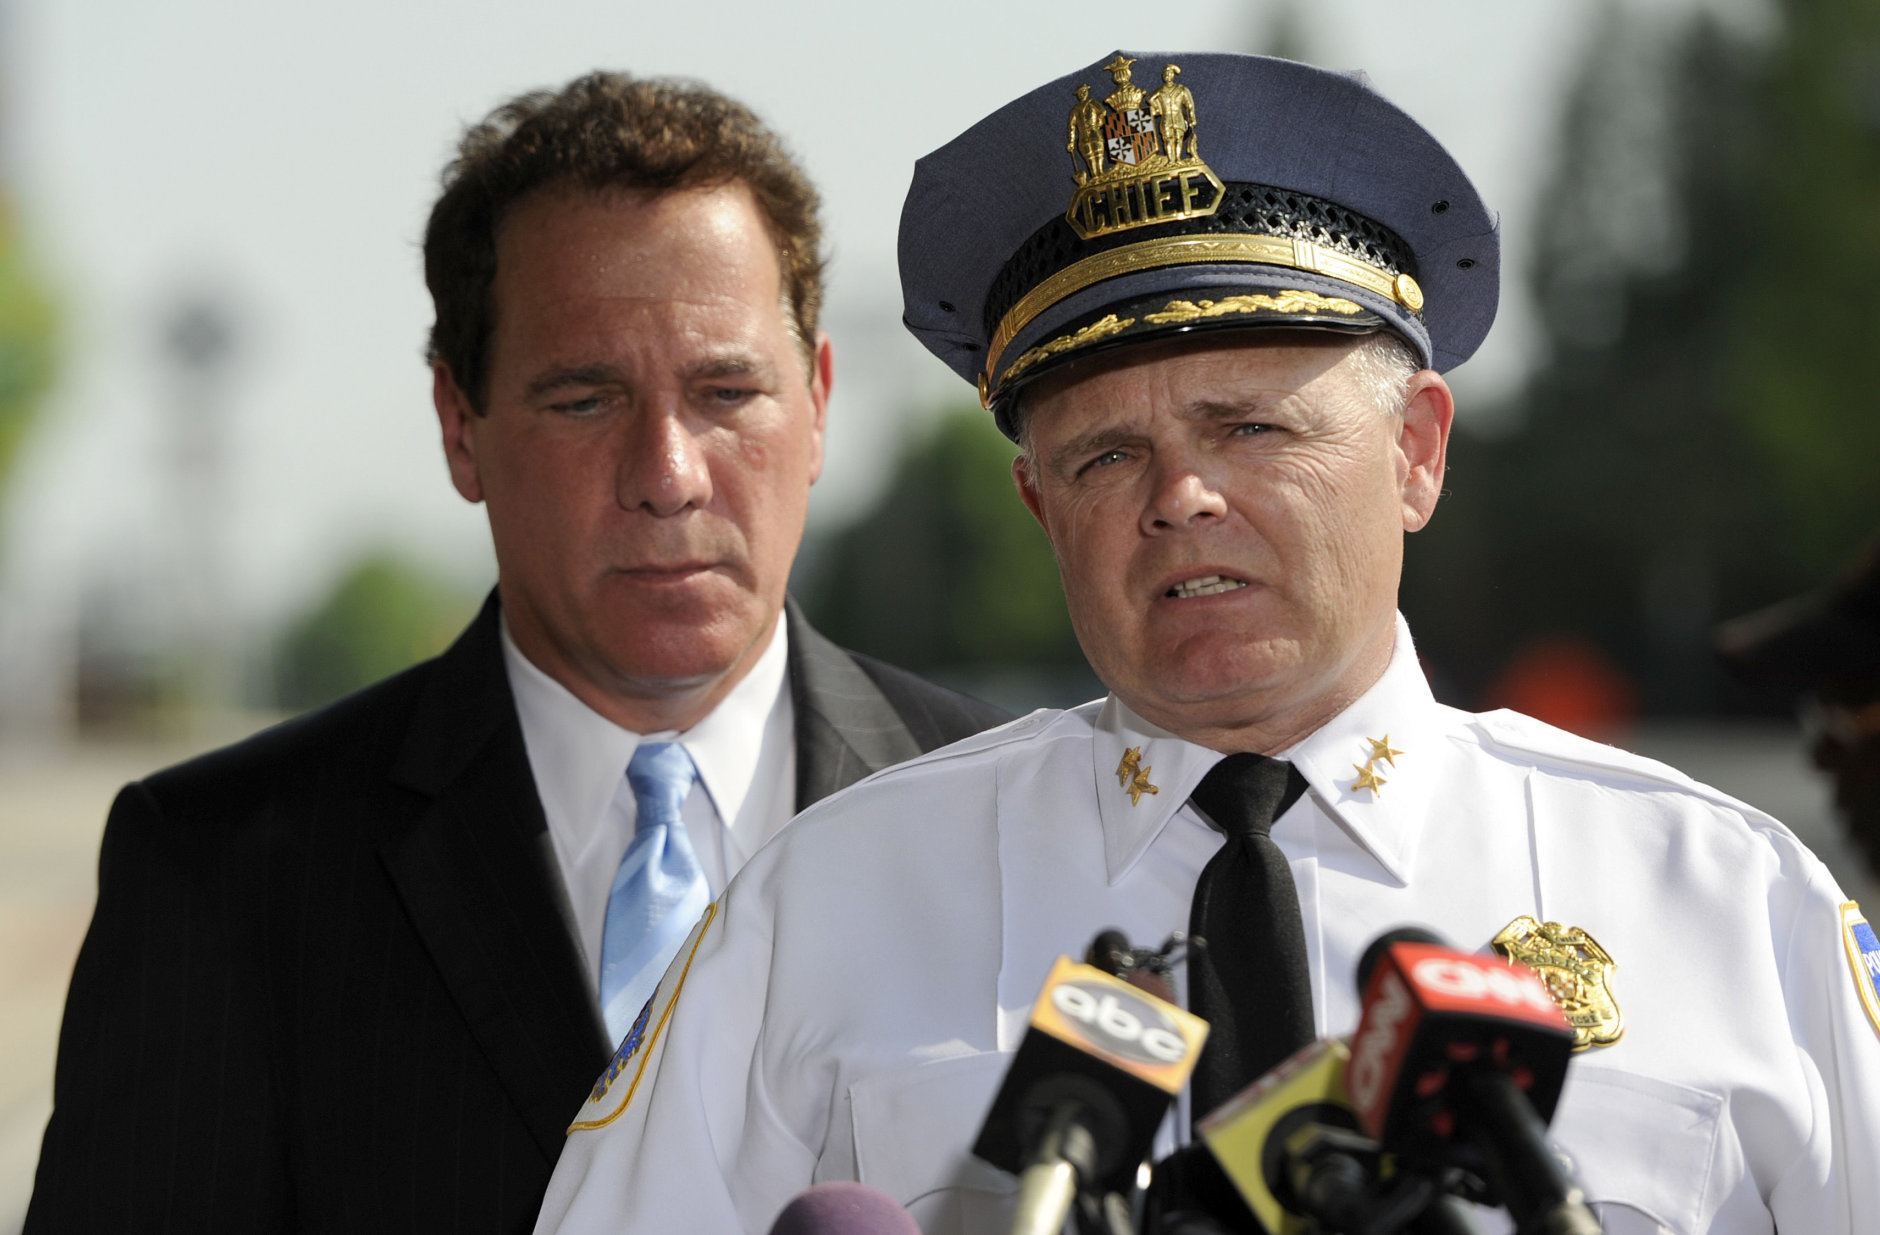 Baltimore County Police Chief Jim Johnson, right, speaks as Baltimore County Executive Kevin Kamenetz listens during a news conference outside WMAR-TV Tuesday, May 13, 2014, in Towson, Md. The officials announced that a man was taken into custody after allegedly crashing a vehicle into the television station. Kamenetz died of cardiac arrest at age 60 Thursday, May 10, 2018. (AP Photo/Steve Ruark)